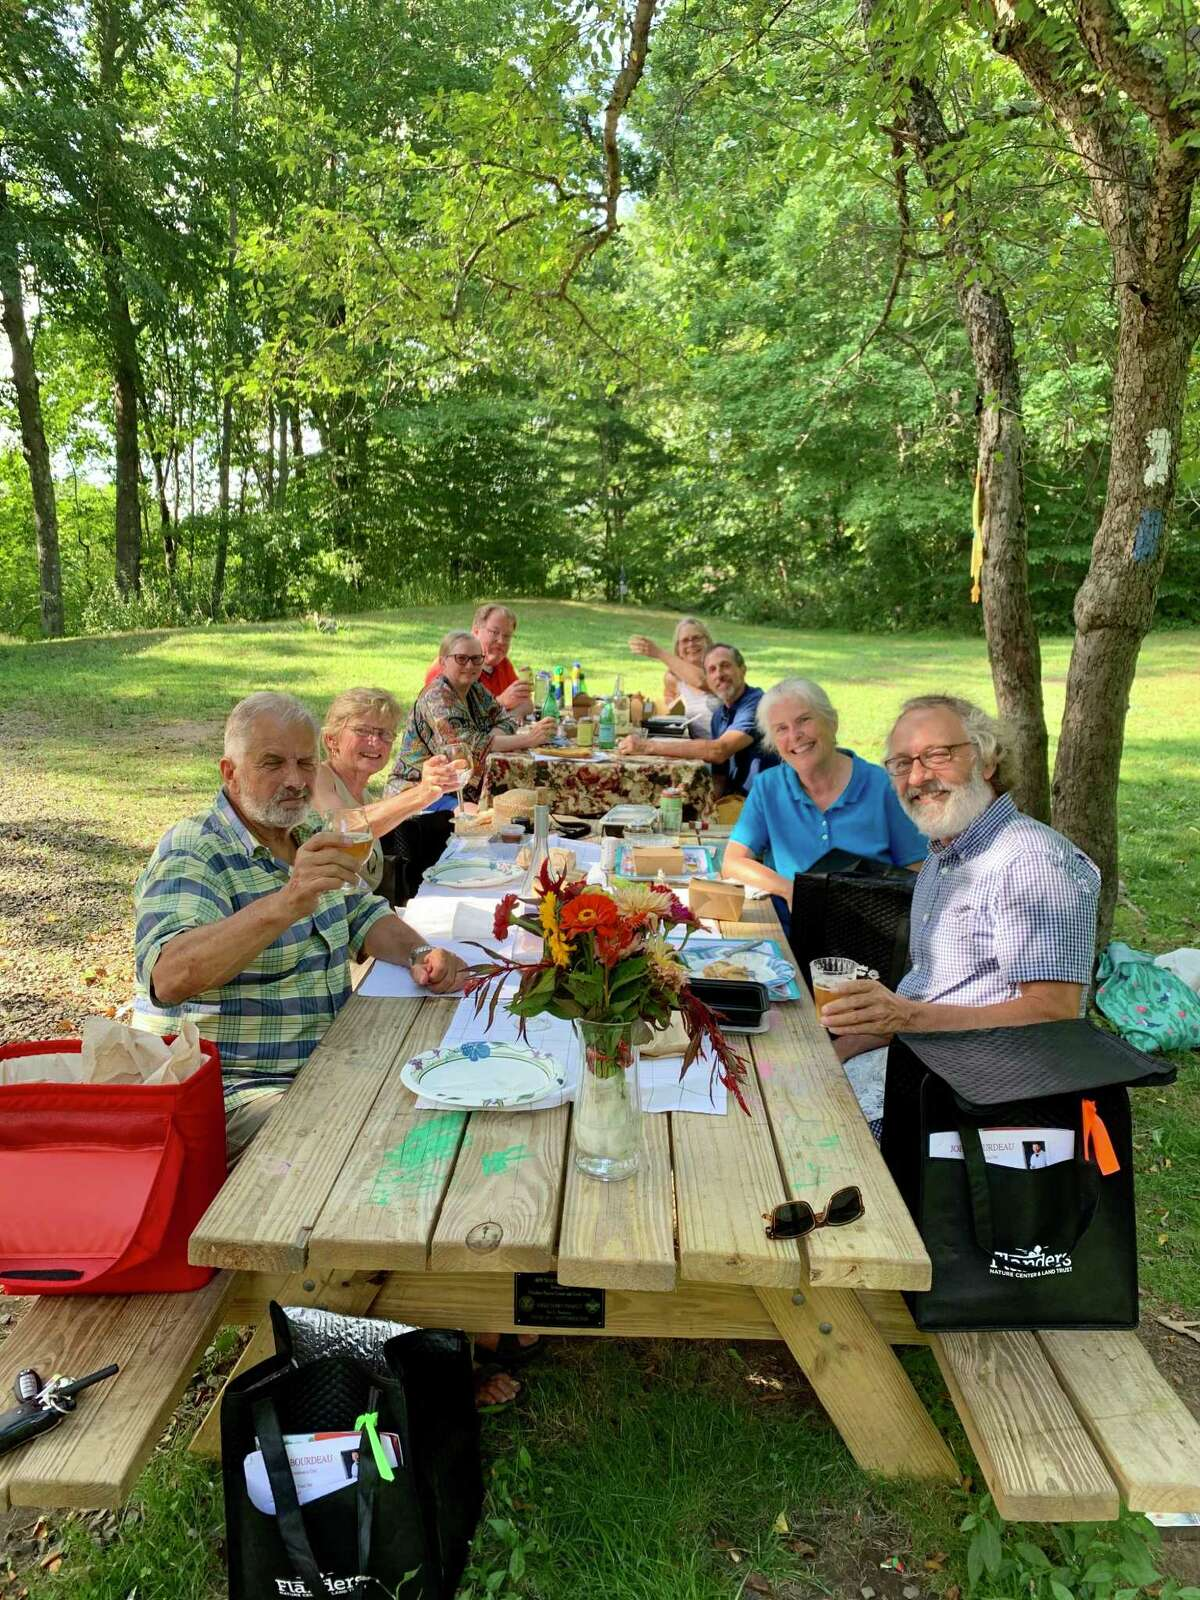 Flanders Nature Center is holding a farm to table dinner Aug. 22.